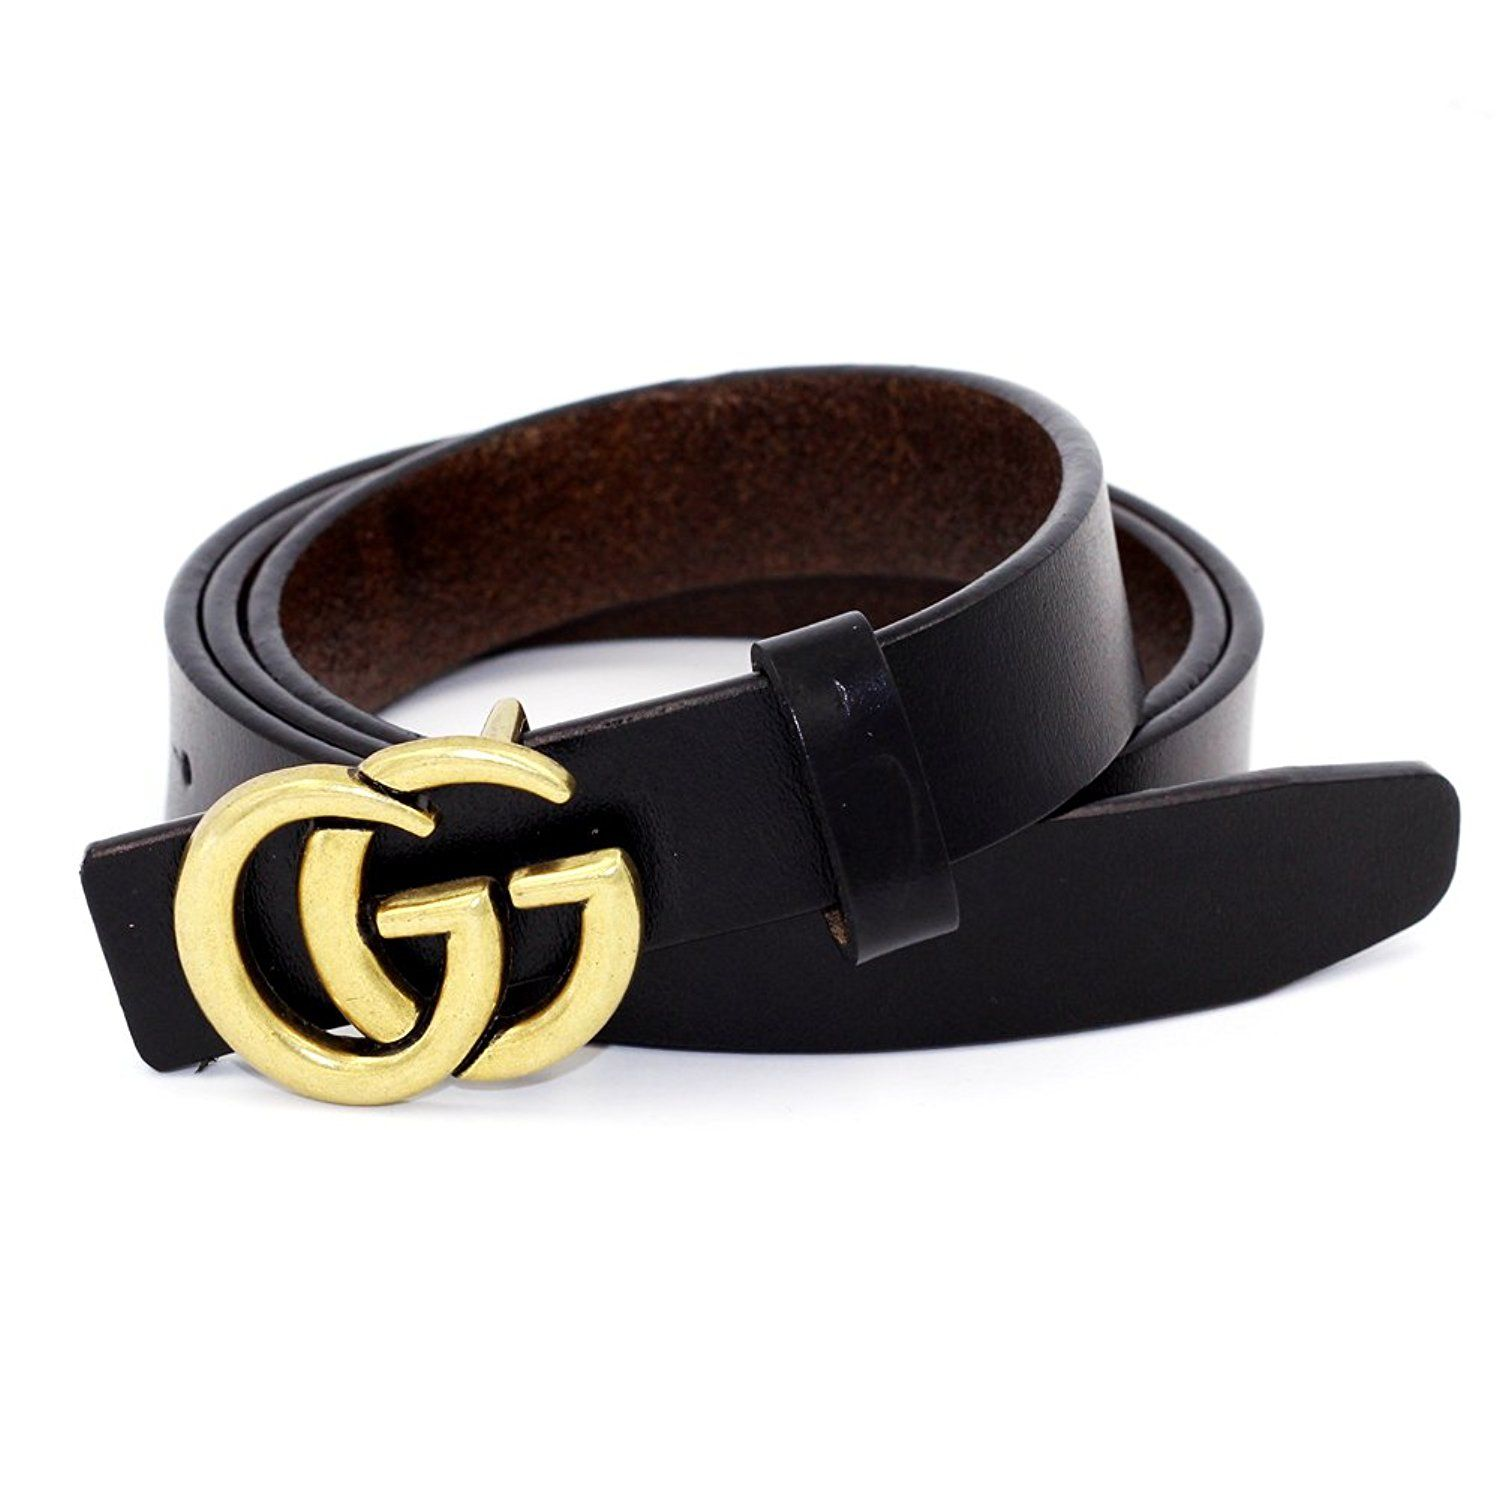 5f77e98f Gucci-inspired Monogram Black Leather Belt | Fall Winter Outfit ...